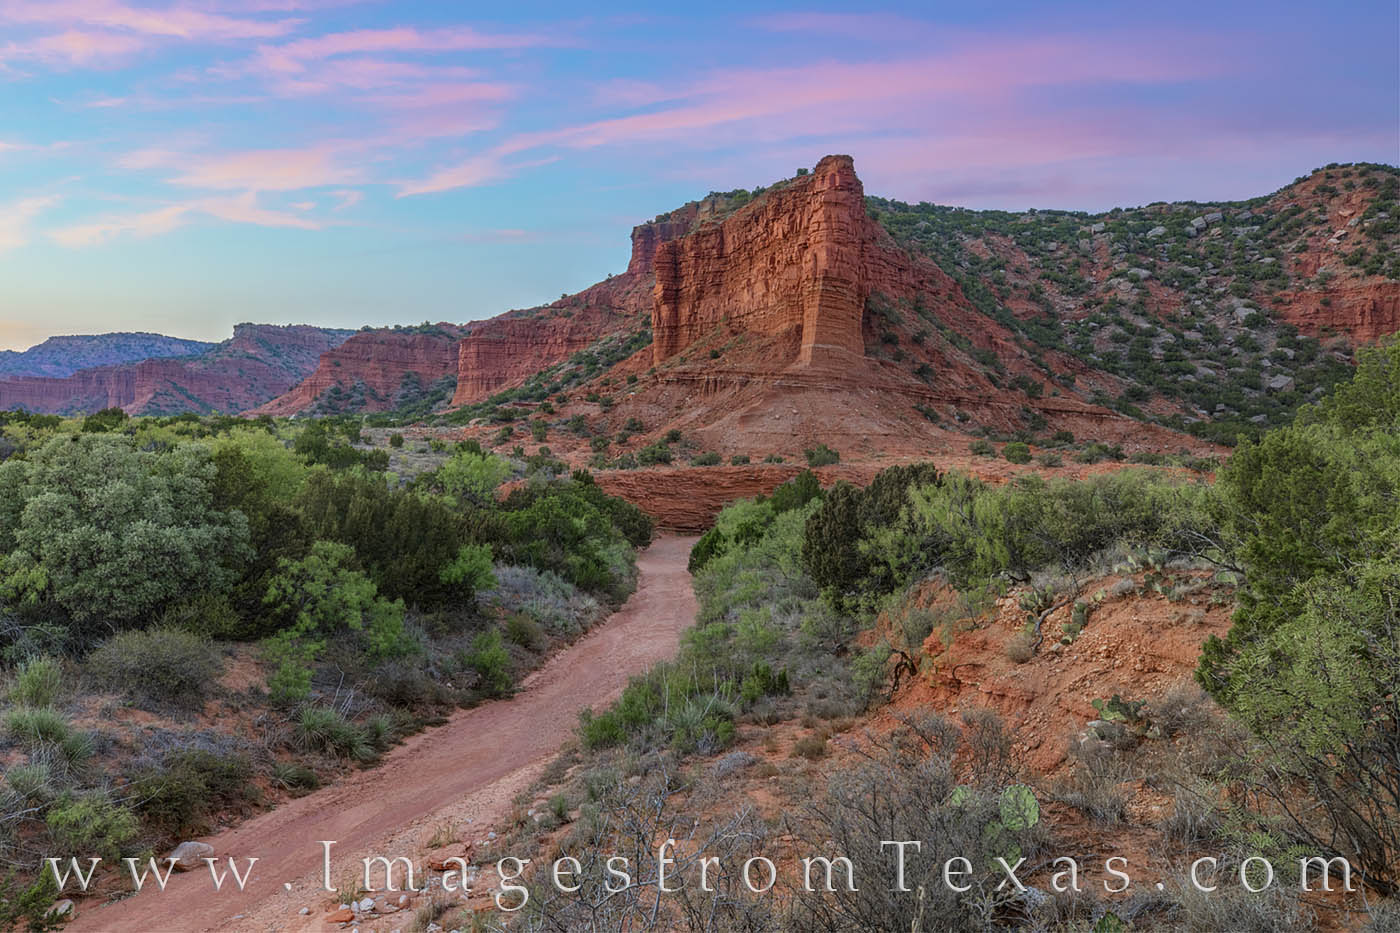 Evening settles over Caprock Canyons State Park in Autumn. This photograph was taken along the South Prong Trail on a beautiful...